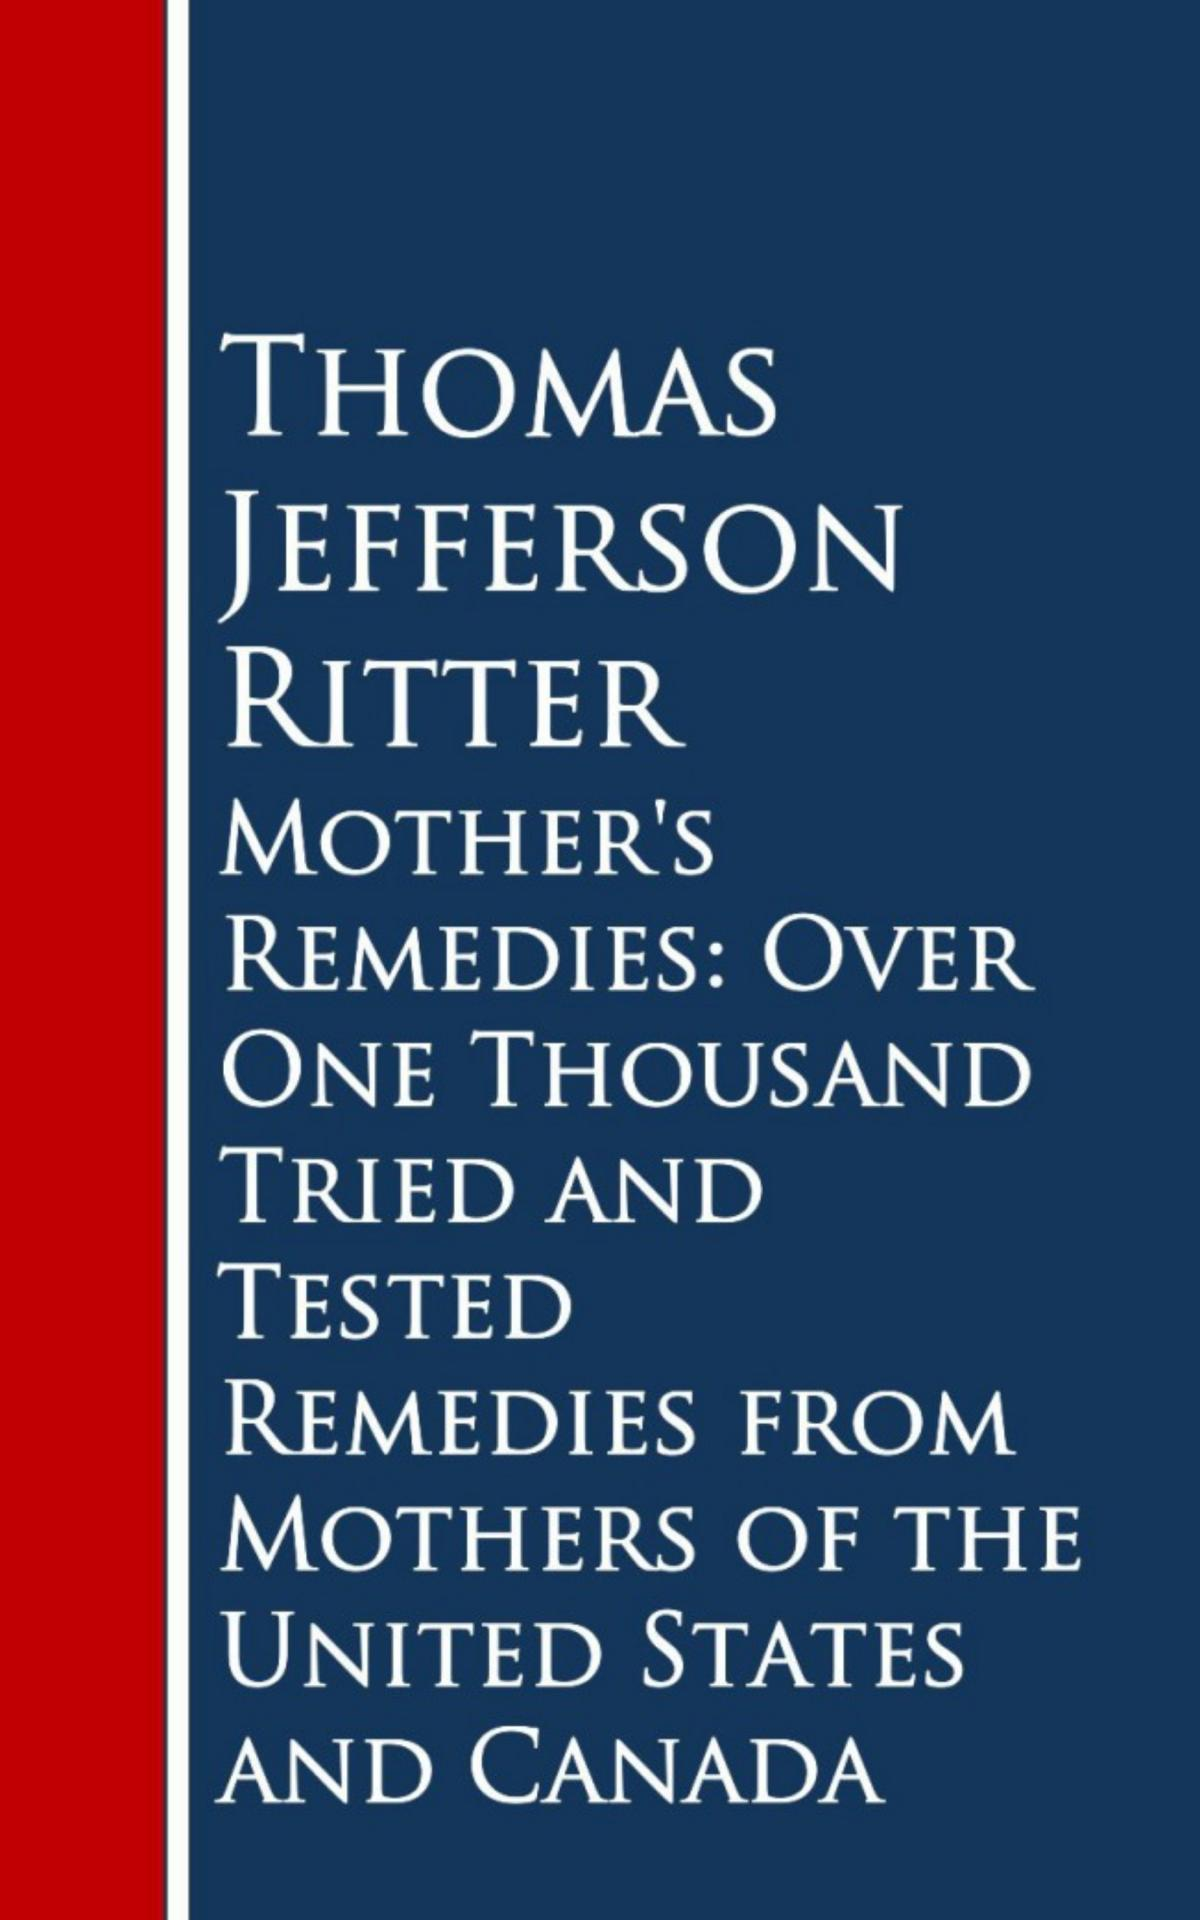 Mother's Remedies: Over One Thousand Tried and Tested Remedies from Mothers of the United States and Canada